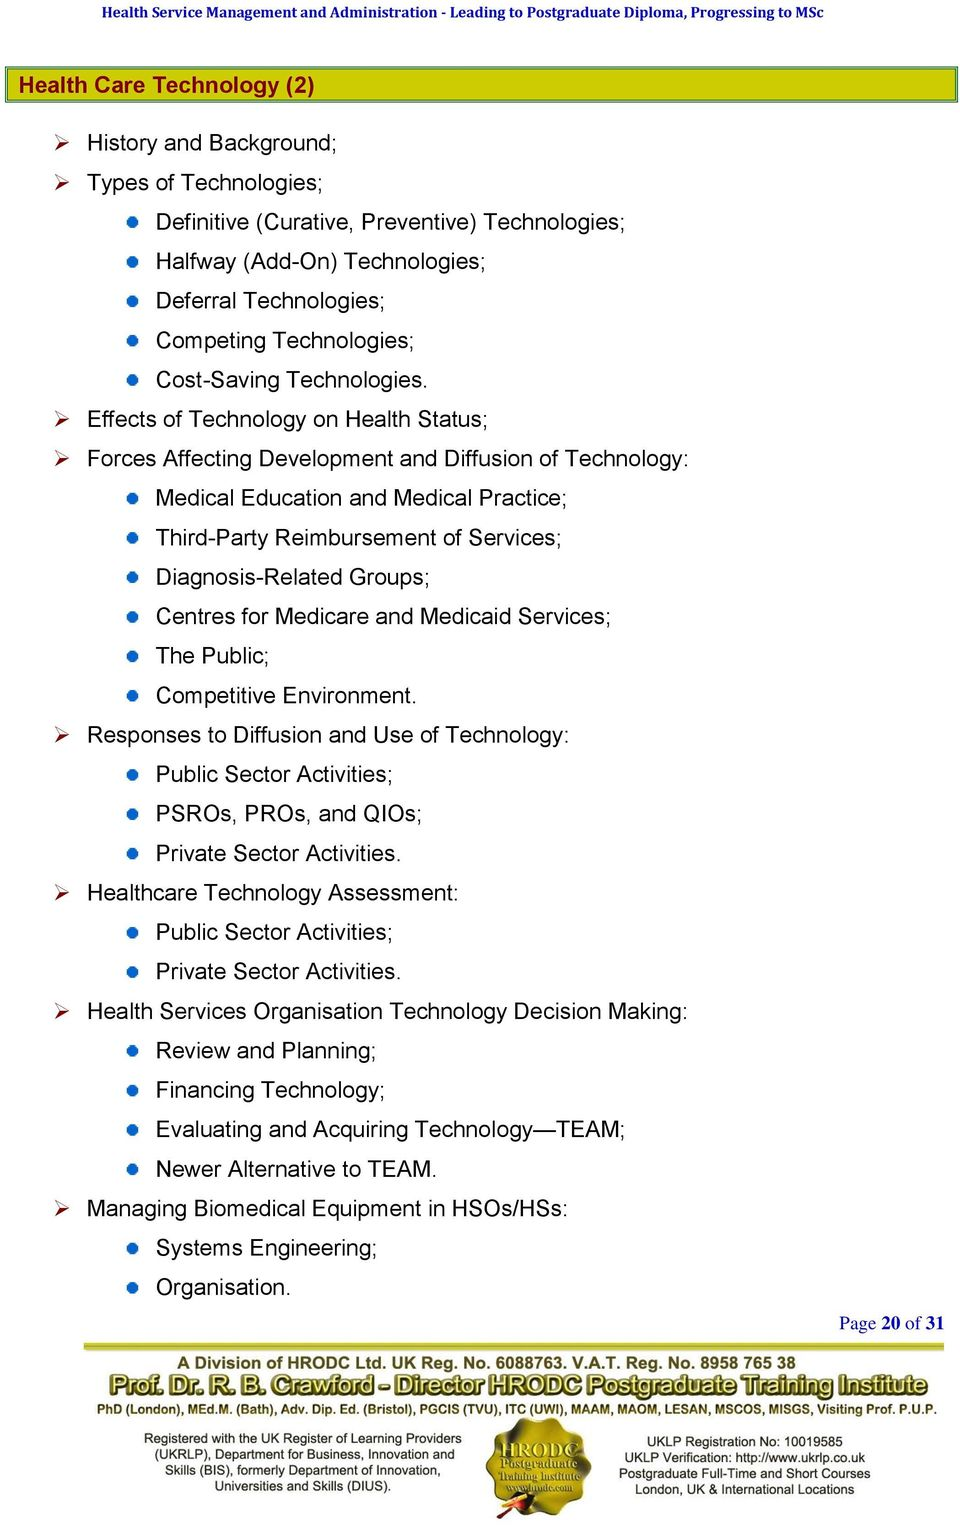 Effects of Technology on Health Status; Forces Affecting Development and Diffusion of Technology: Medical Education and Medical Practice; Third-Party Reimbursement of Services; Diagnosis-Related